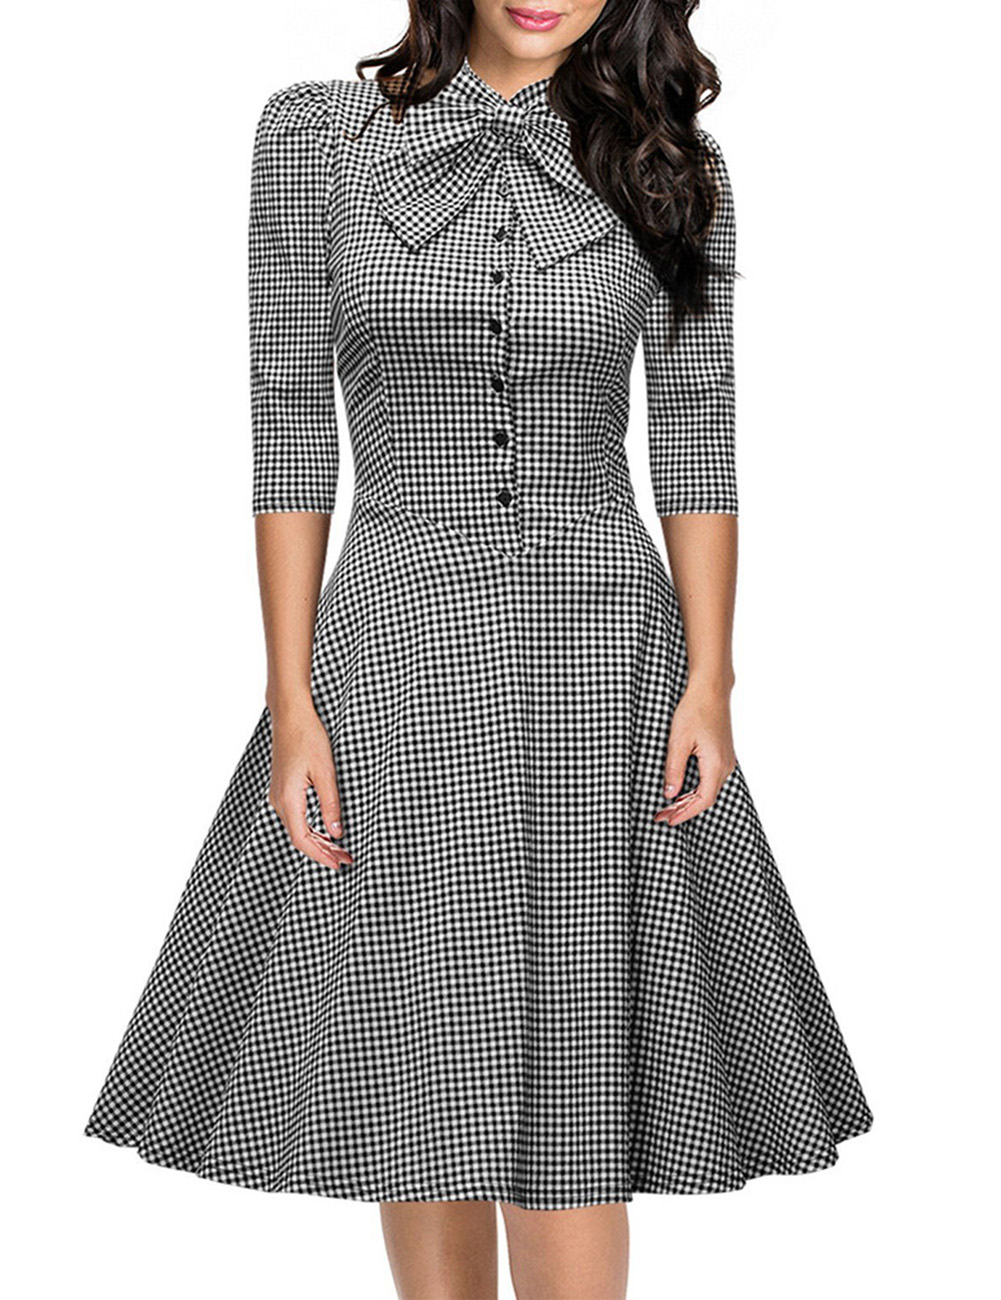 [US Direct] Leadingstar Women's Official Bow Neck Plaid Slim Half Sleeve Swing Vintage Dress Black and White Latticed Asia Size S